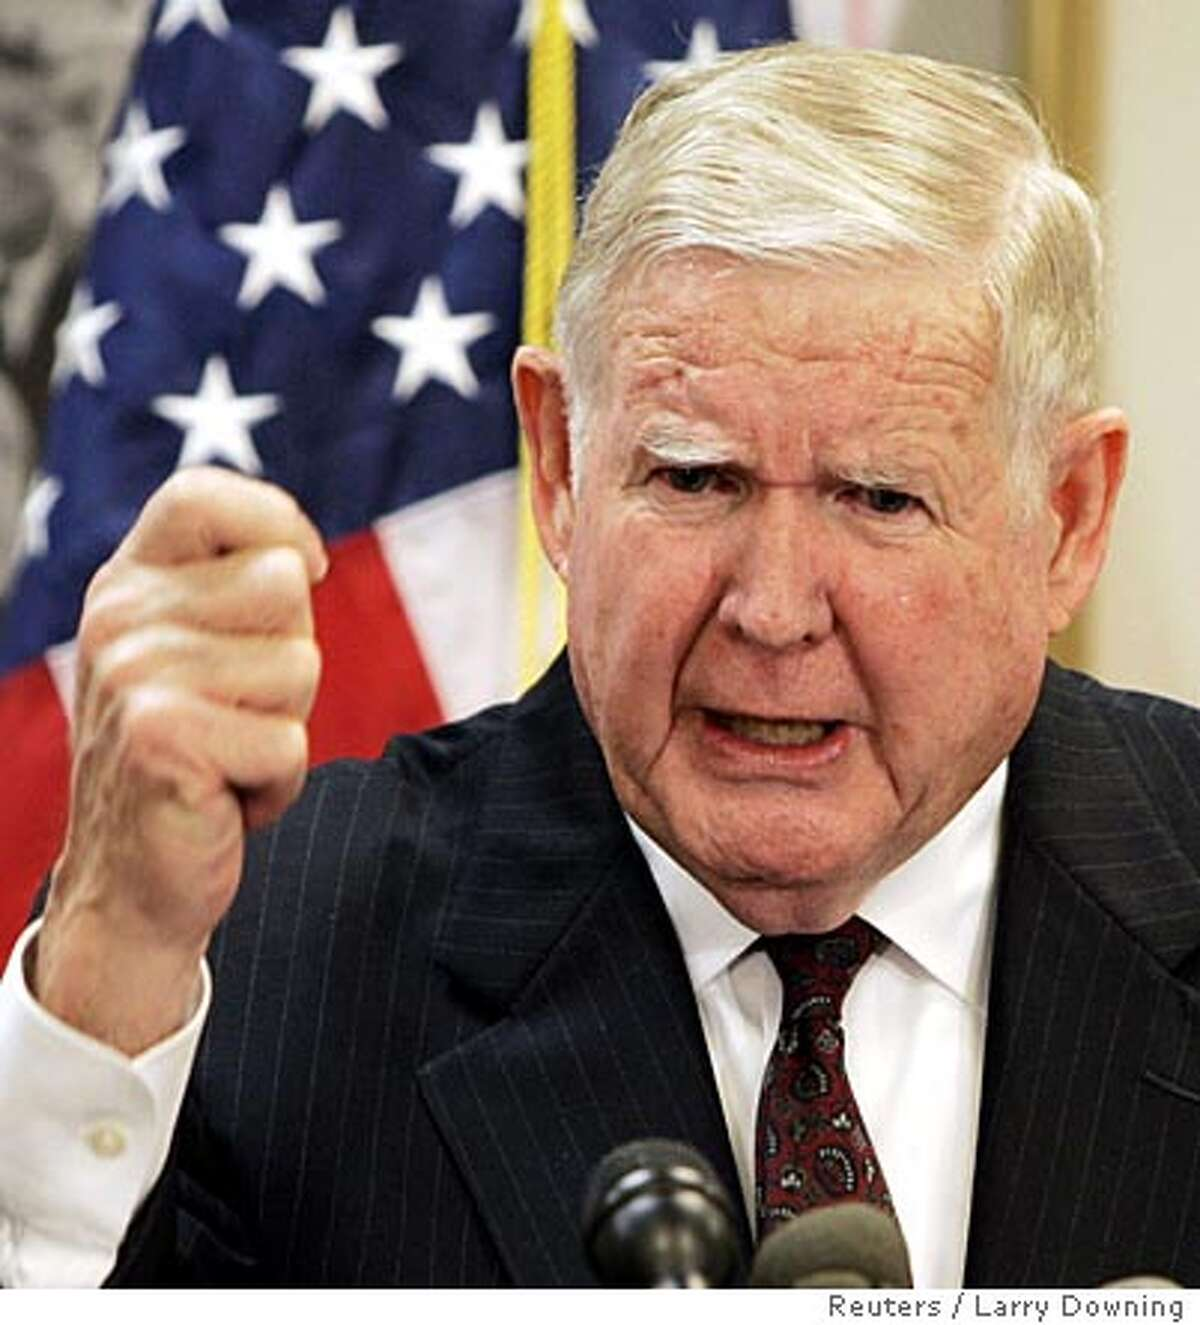 U.S. Rep. John Murtha (D-Pa) calls for the withdrawal of U.S. military personnel from Iraq while at a news conference on Capitol Hill November 17, 2005. Murtha called the war